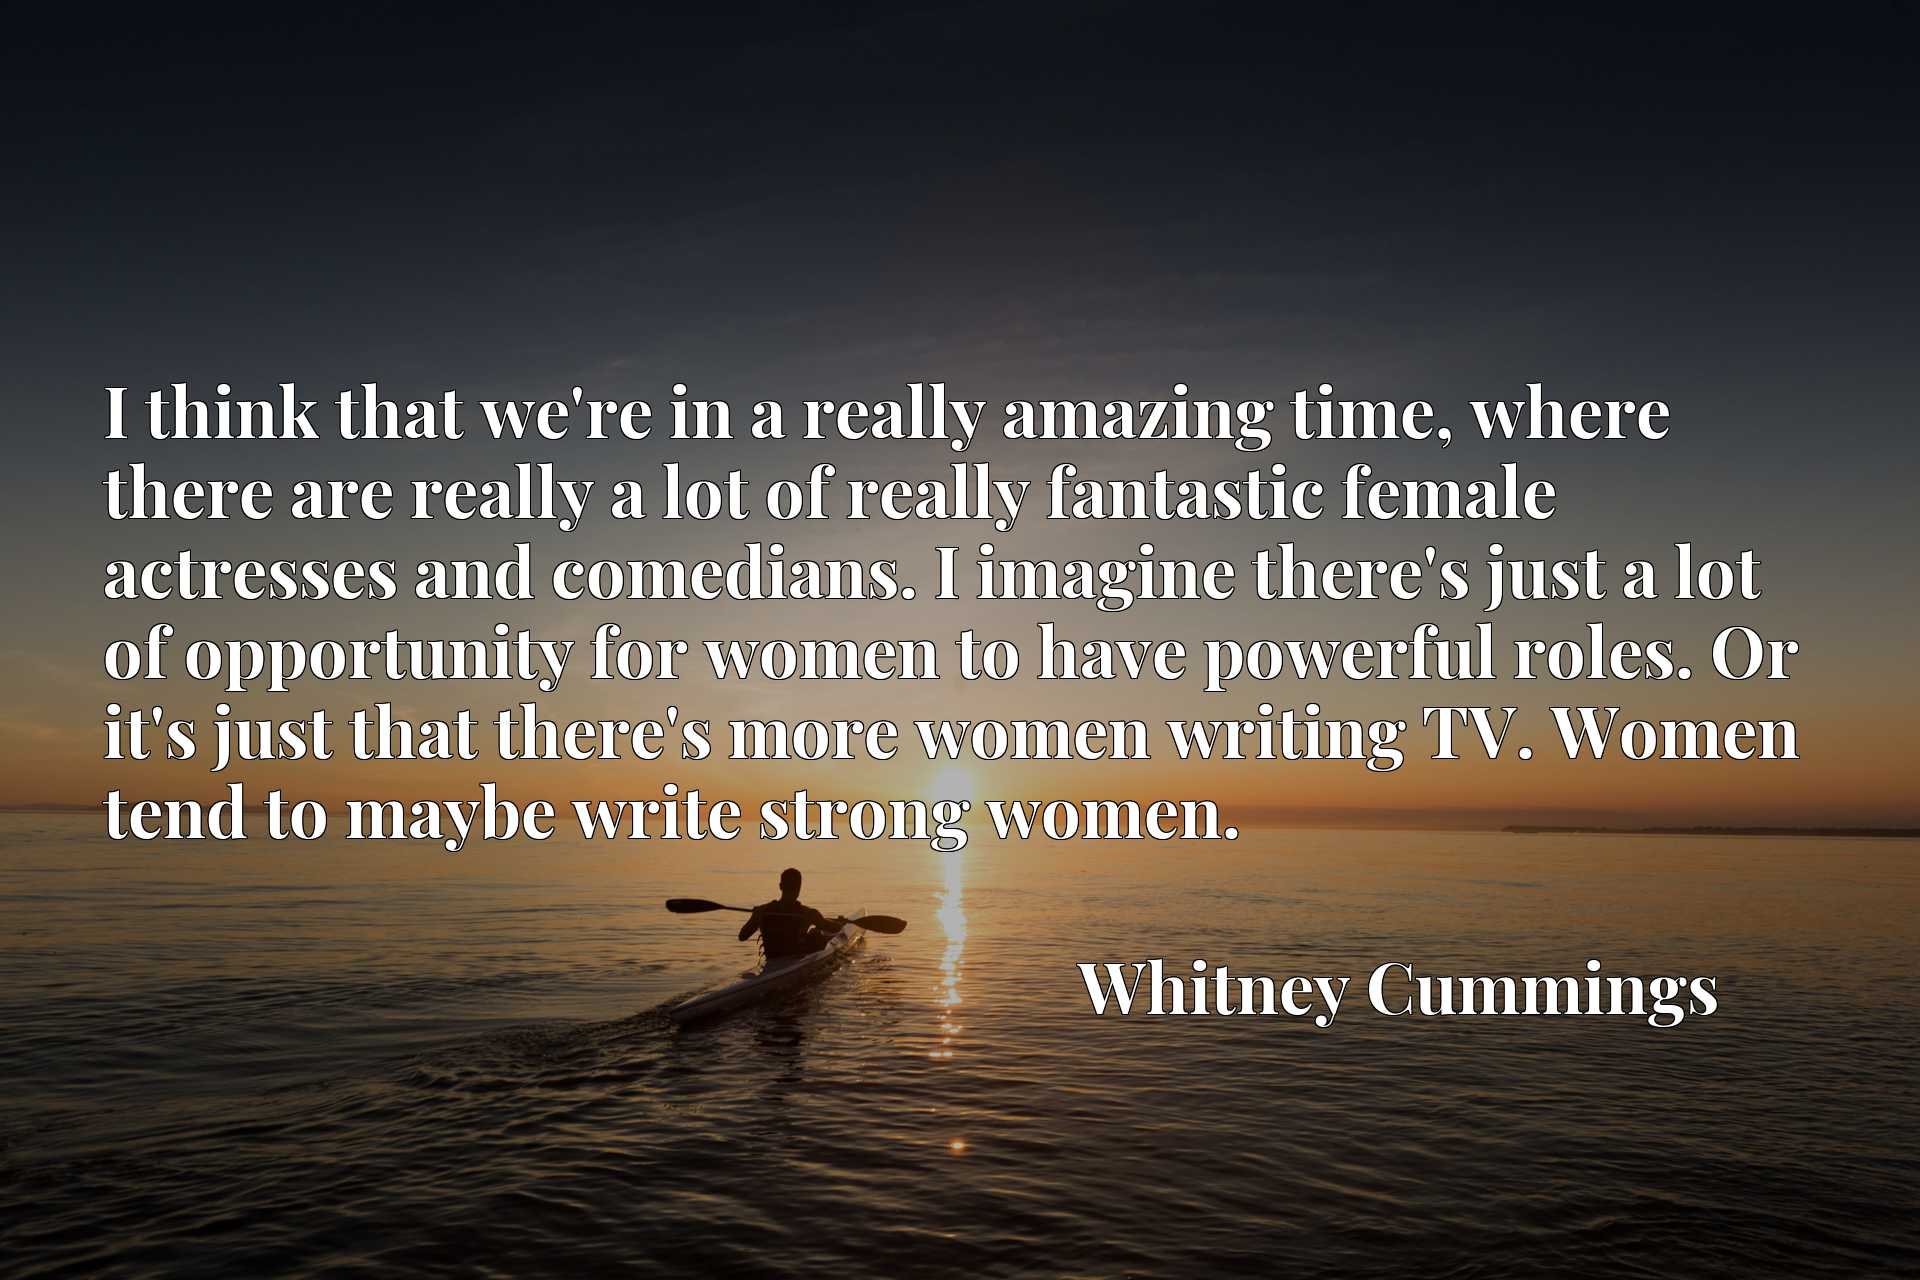 I think that we're in a really amazing time, where there are really a lot of really fantastic female actresses and comedians. I imagine there's just a lot of opportunity for women to have powerful roles. Or it's just that there's more women writing TV. Women tend to maybe write strong women.